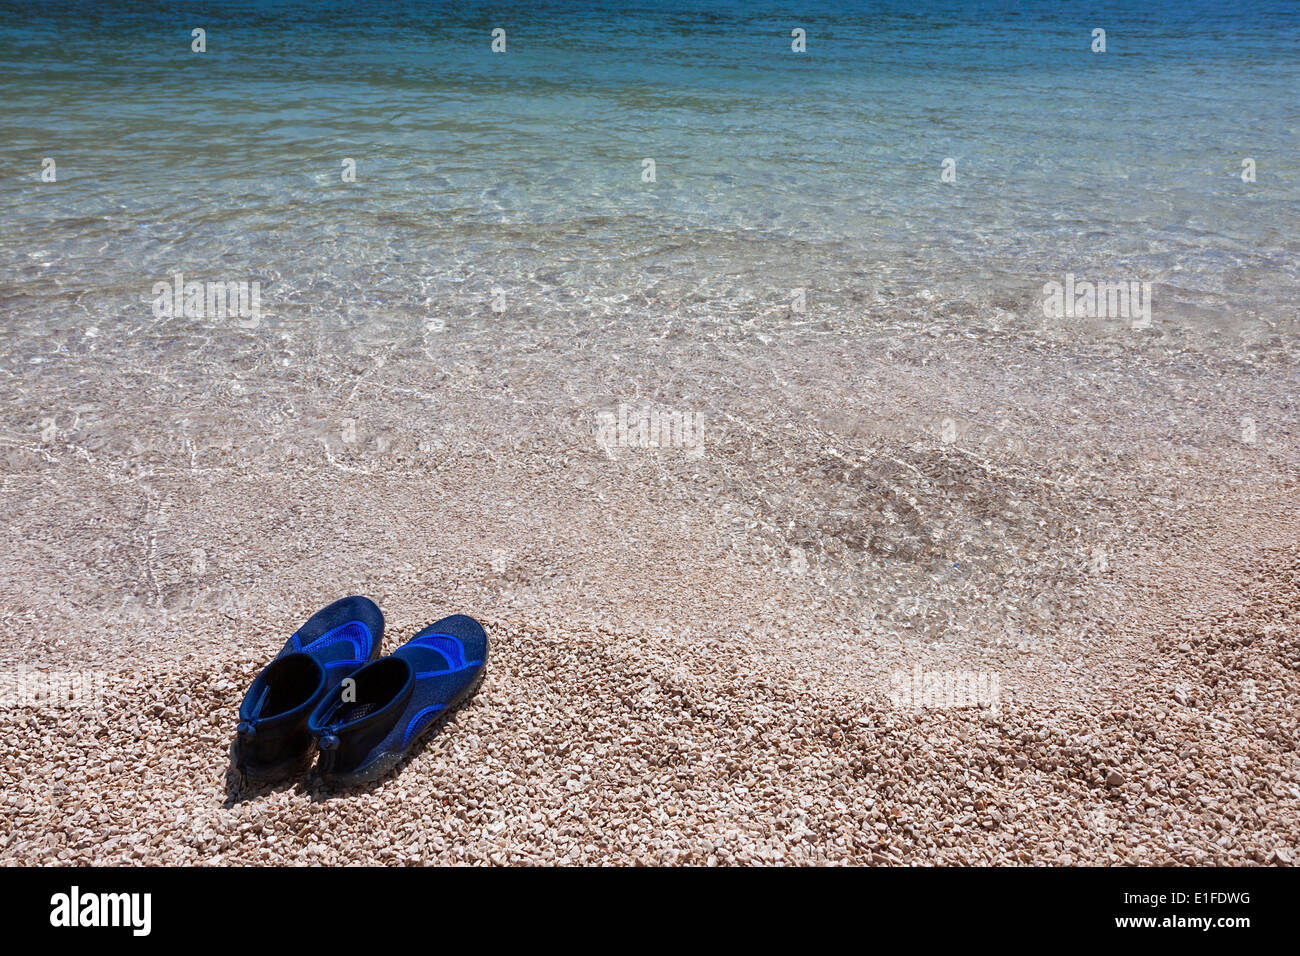 91b13fcdc Swimming Shoes Stock Photos   Swimming Shoes Stock Images - Alamy